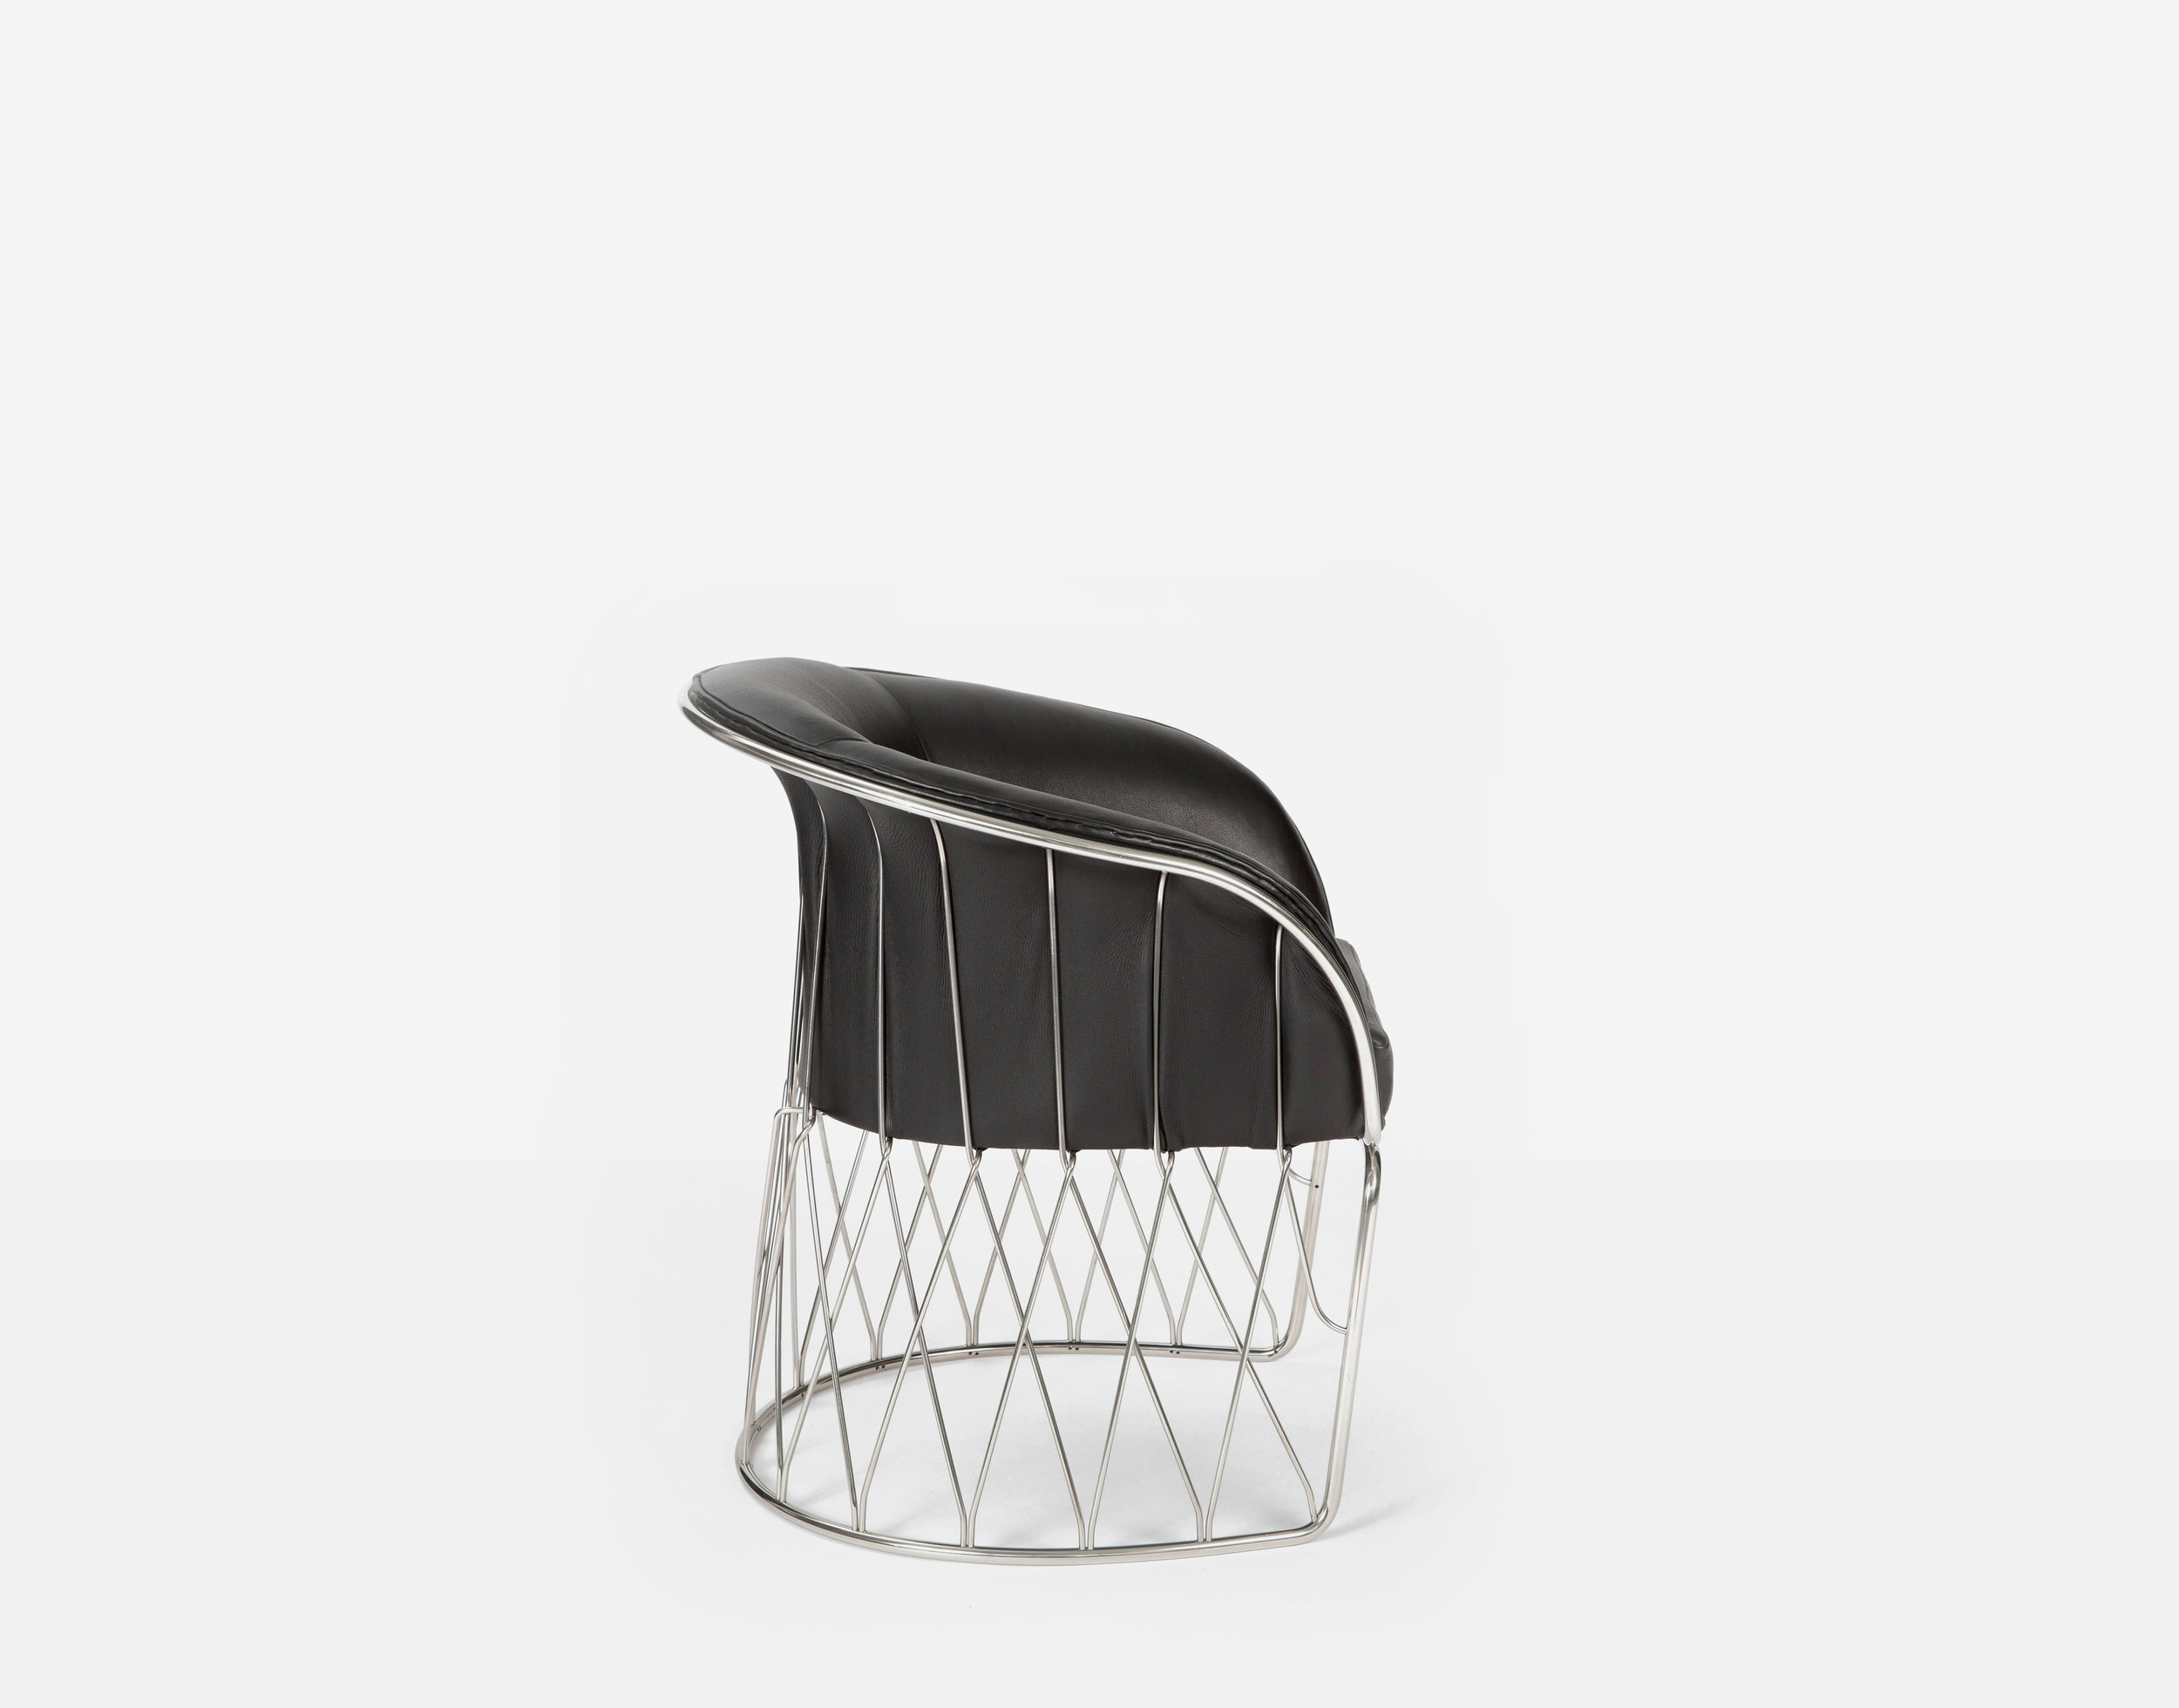 Luteca_PRV_Equipal-Chair_Black-Leather-Chrome_S-W.jpg